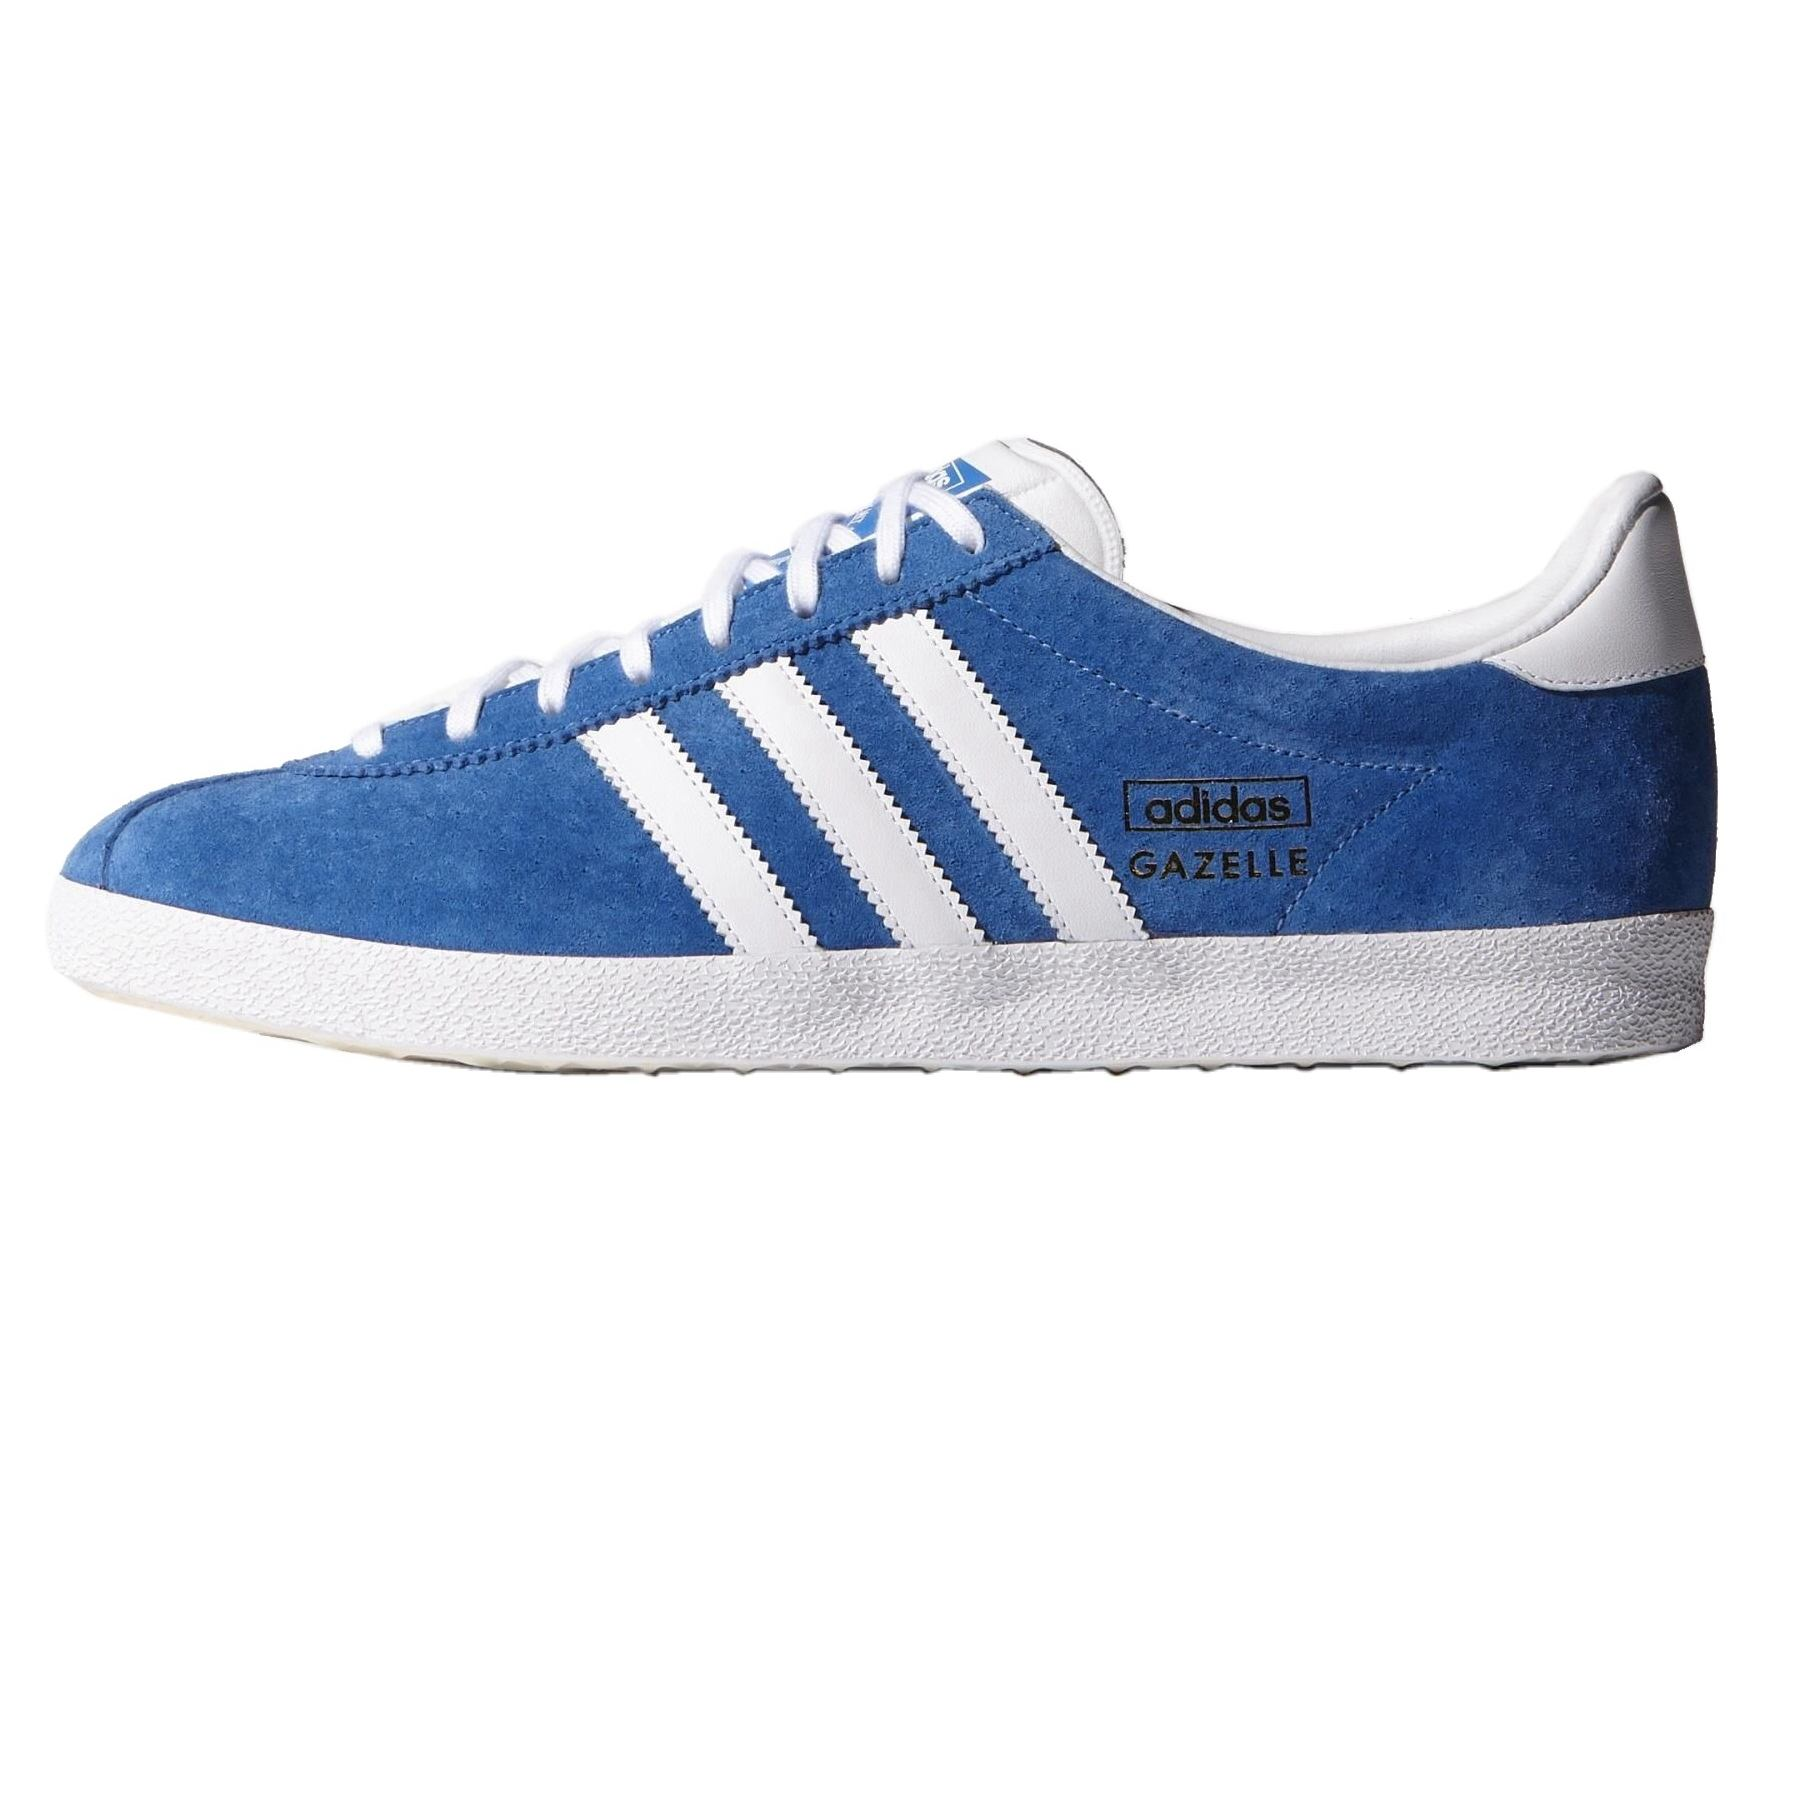 adidas originals gazelle og schuhe sneaker herren damen diverse farben. Black Bedroom Furniture Sets. Home Design Ideas